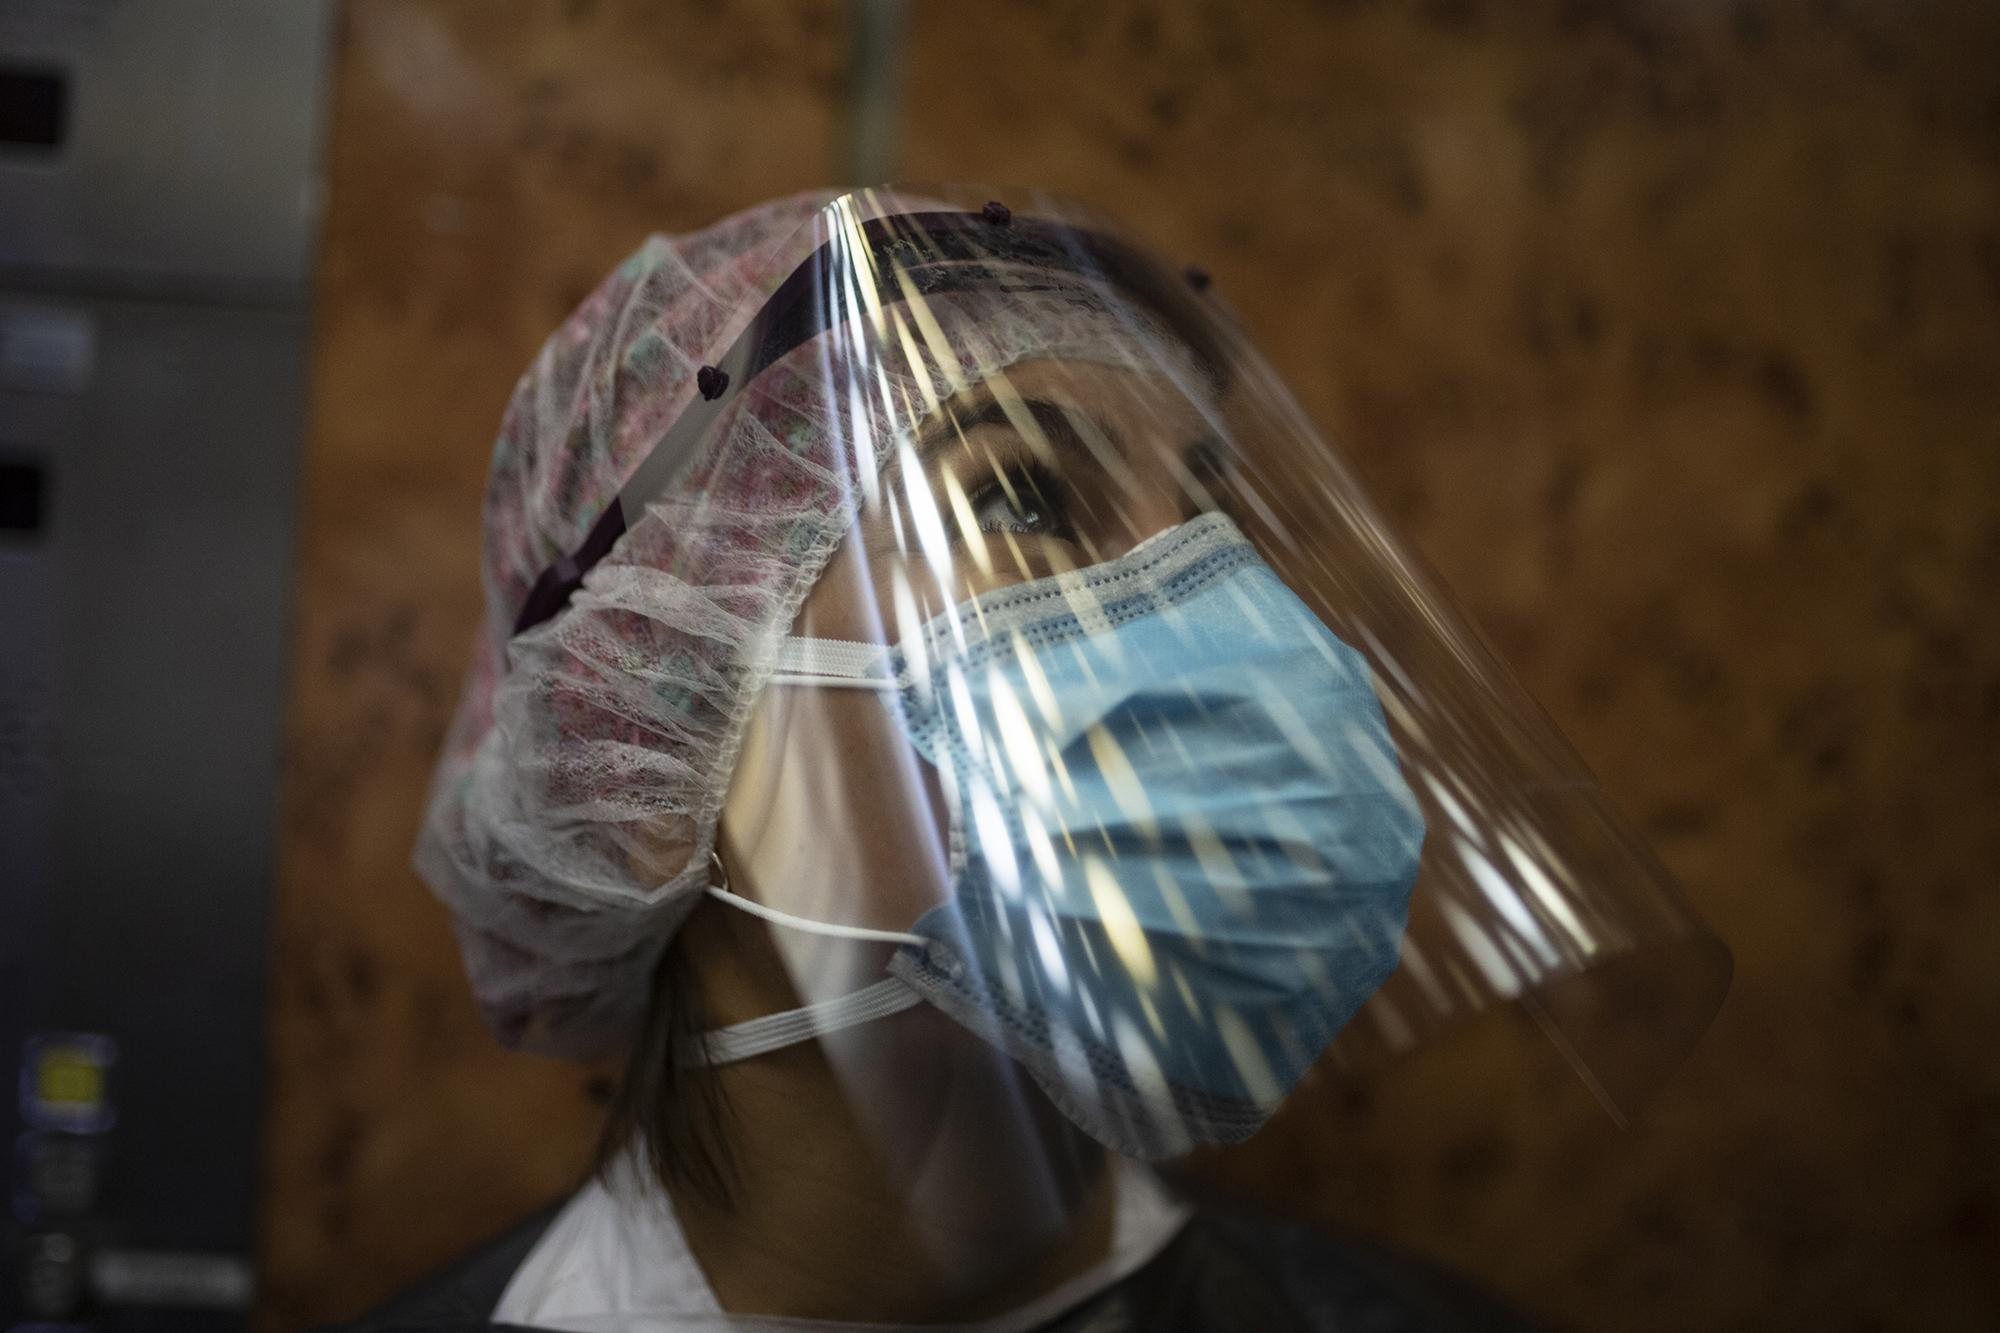 Nurse Melba Vasquez dressed in protective gear takes an elevator in a nursing home to perform covid-19 tests on residents with symptoms of the new coronavirus. Barcelona April 14, 2020